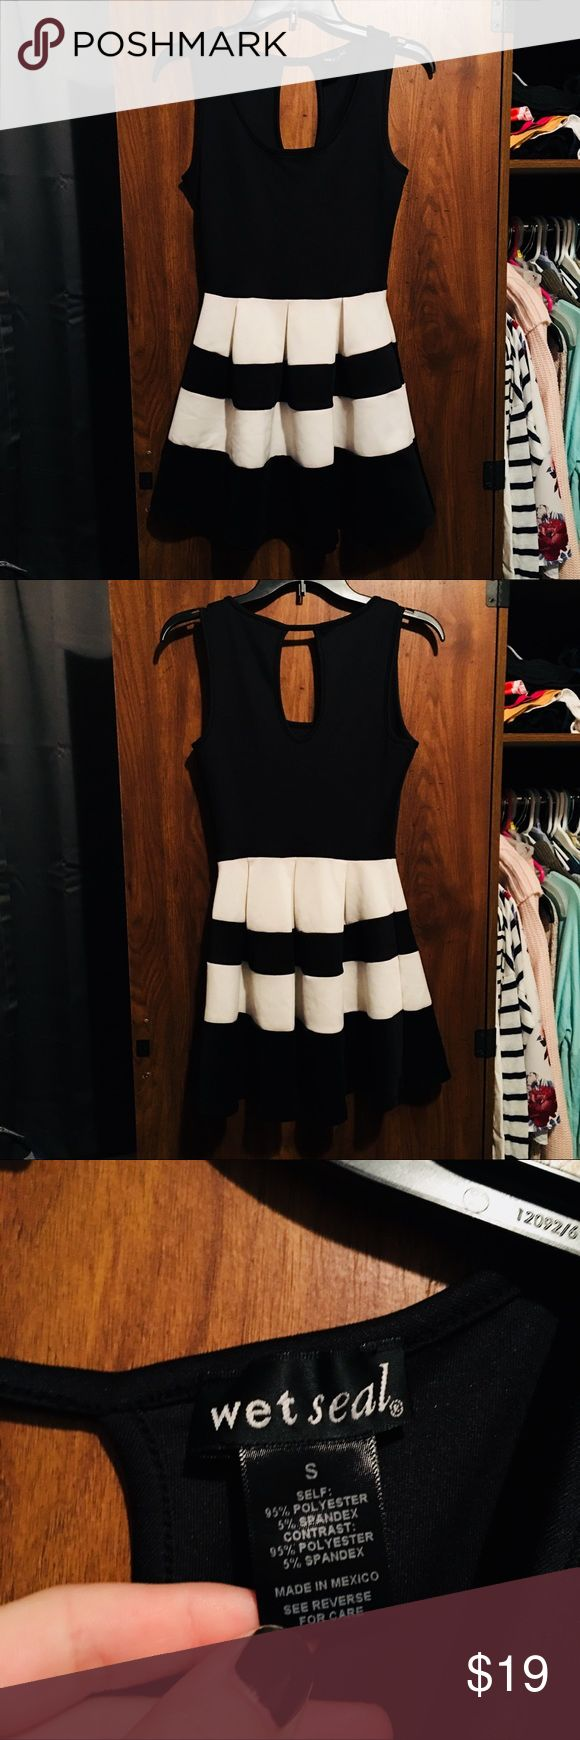 Striped formal dress Black and white dress • worn once • perfect condition • super soft material • fits small/medium Wet Seal Dresses Midi